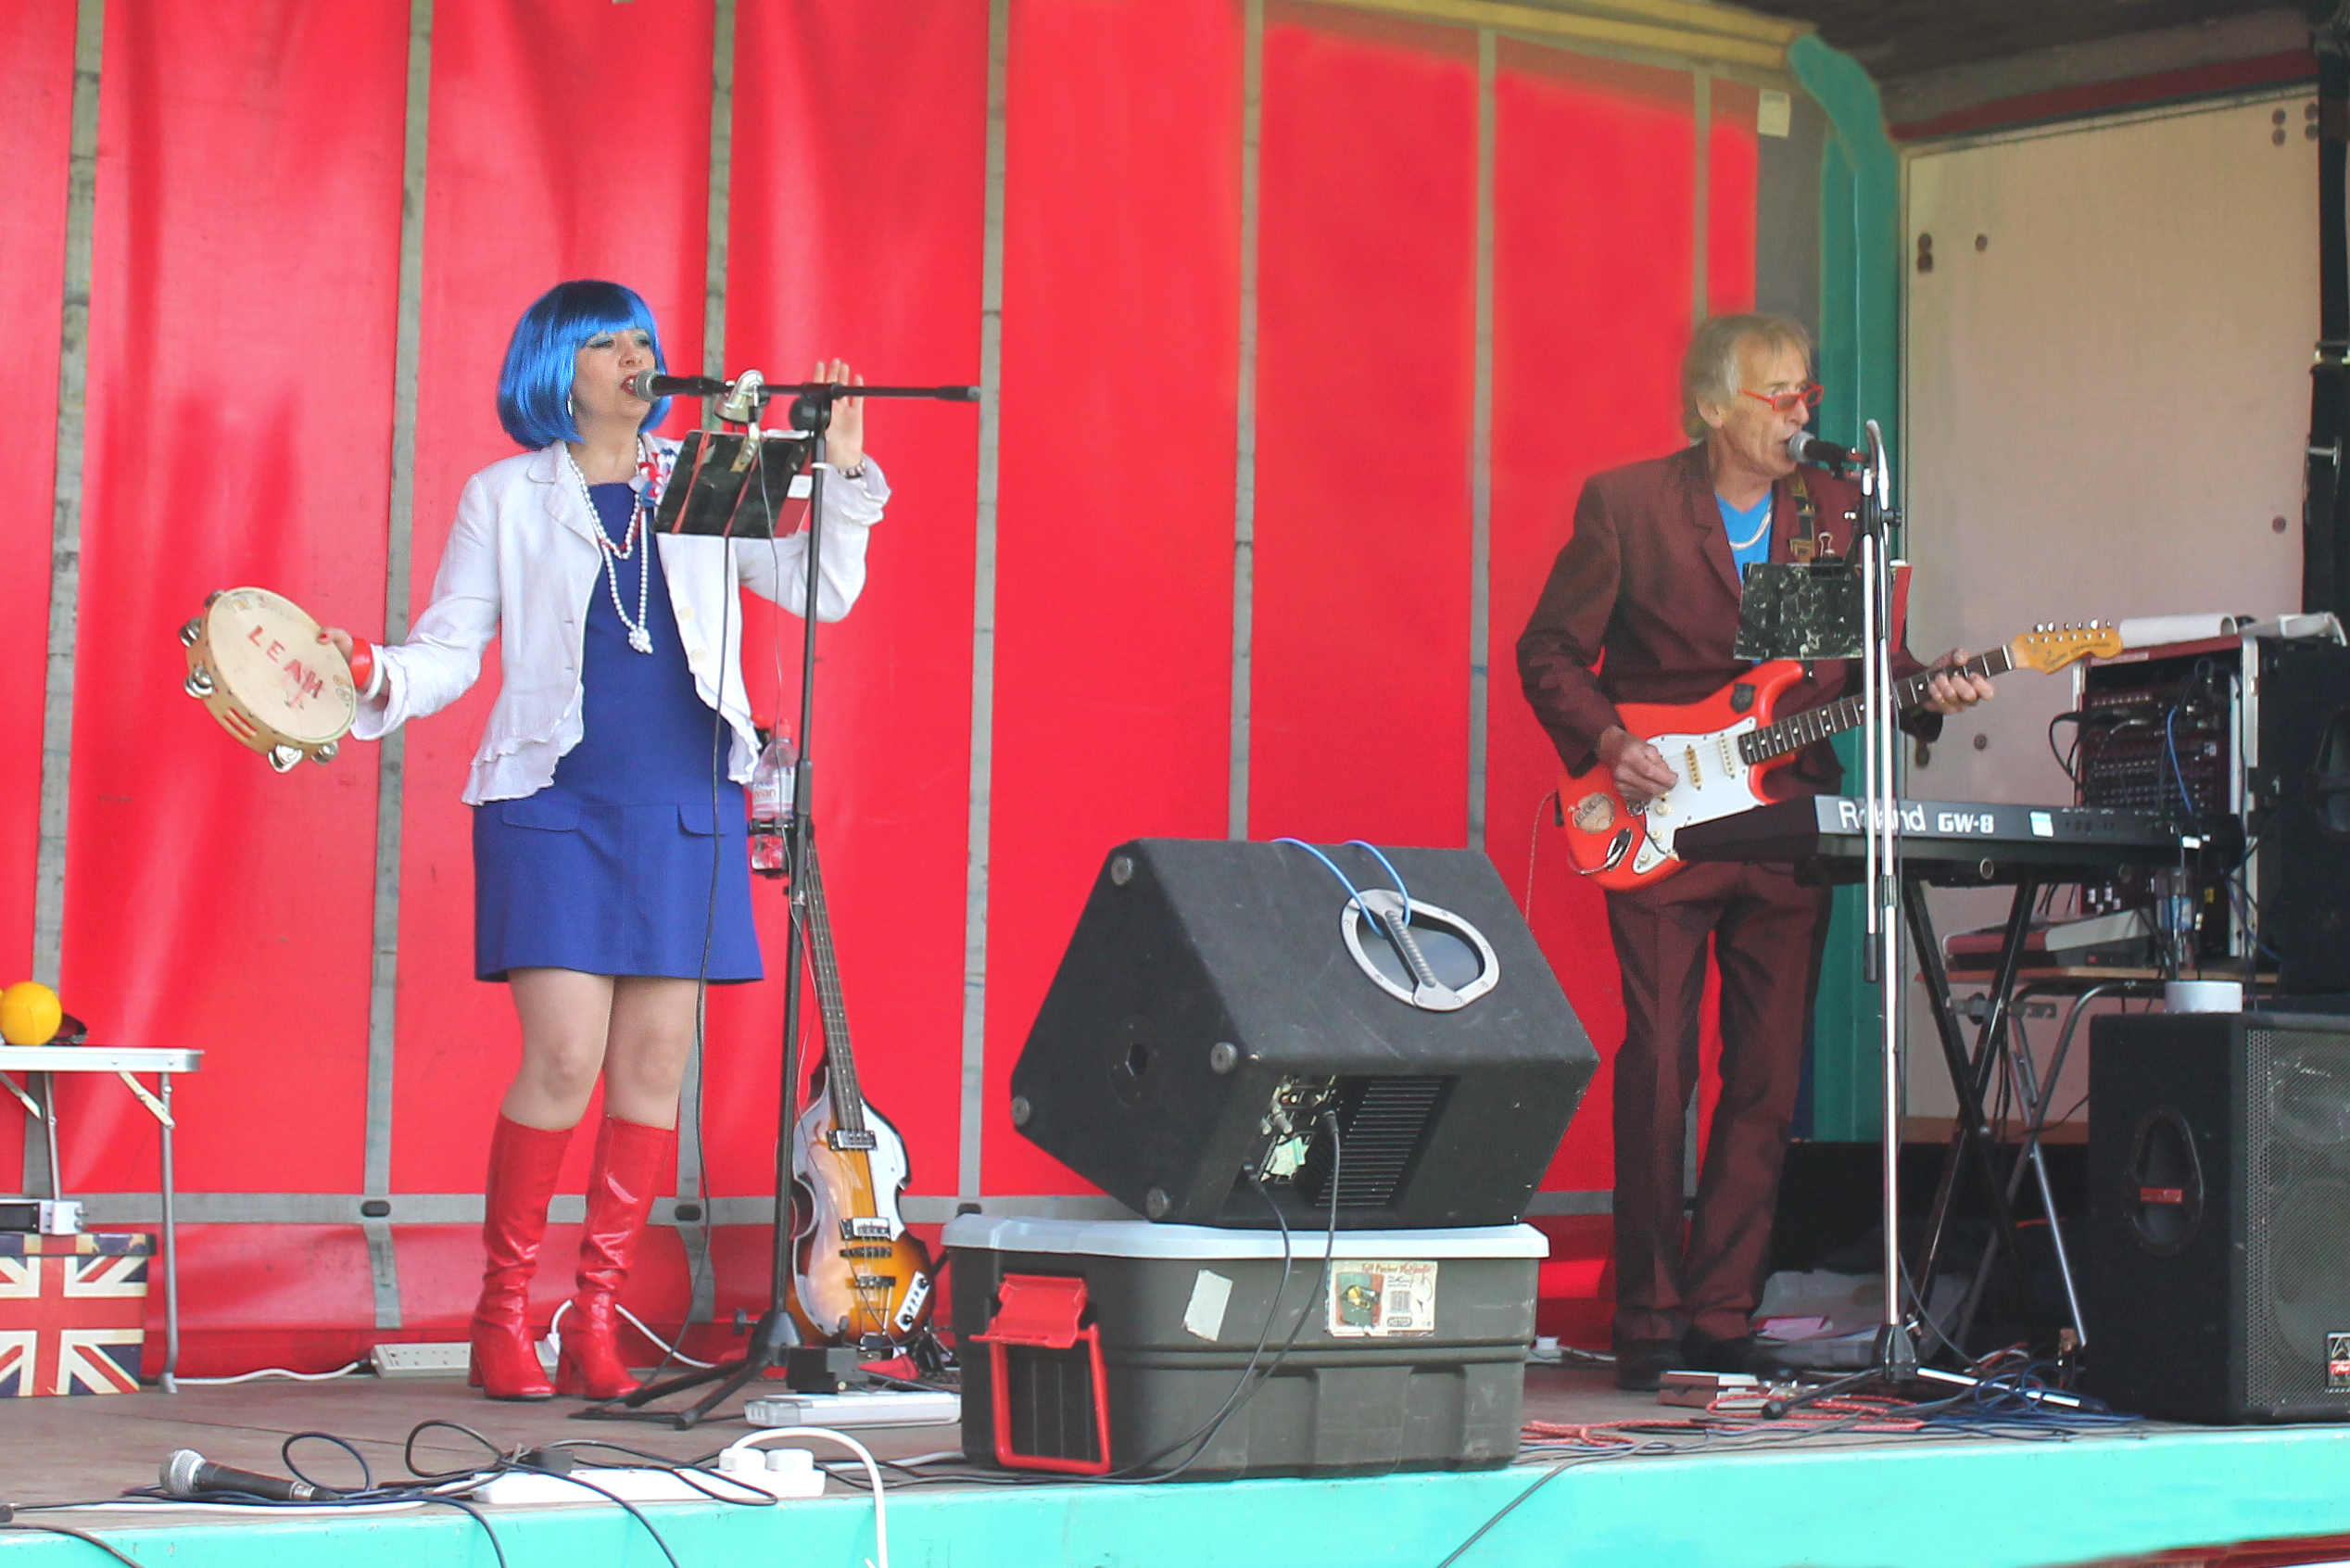 Swinging 60s band performing live